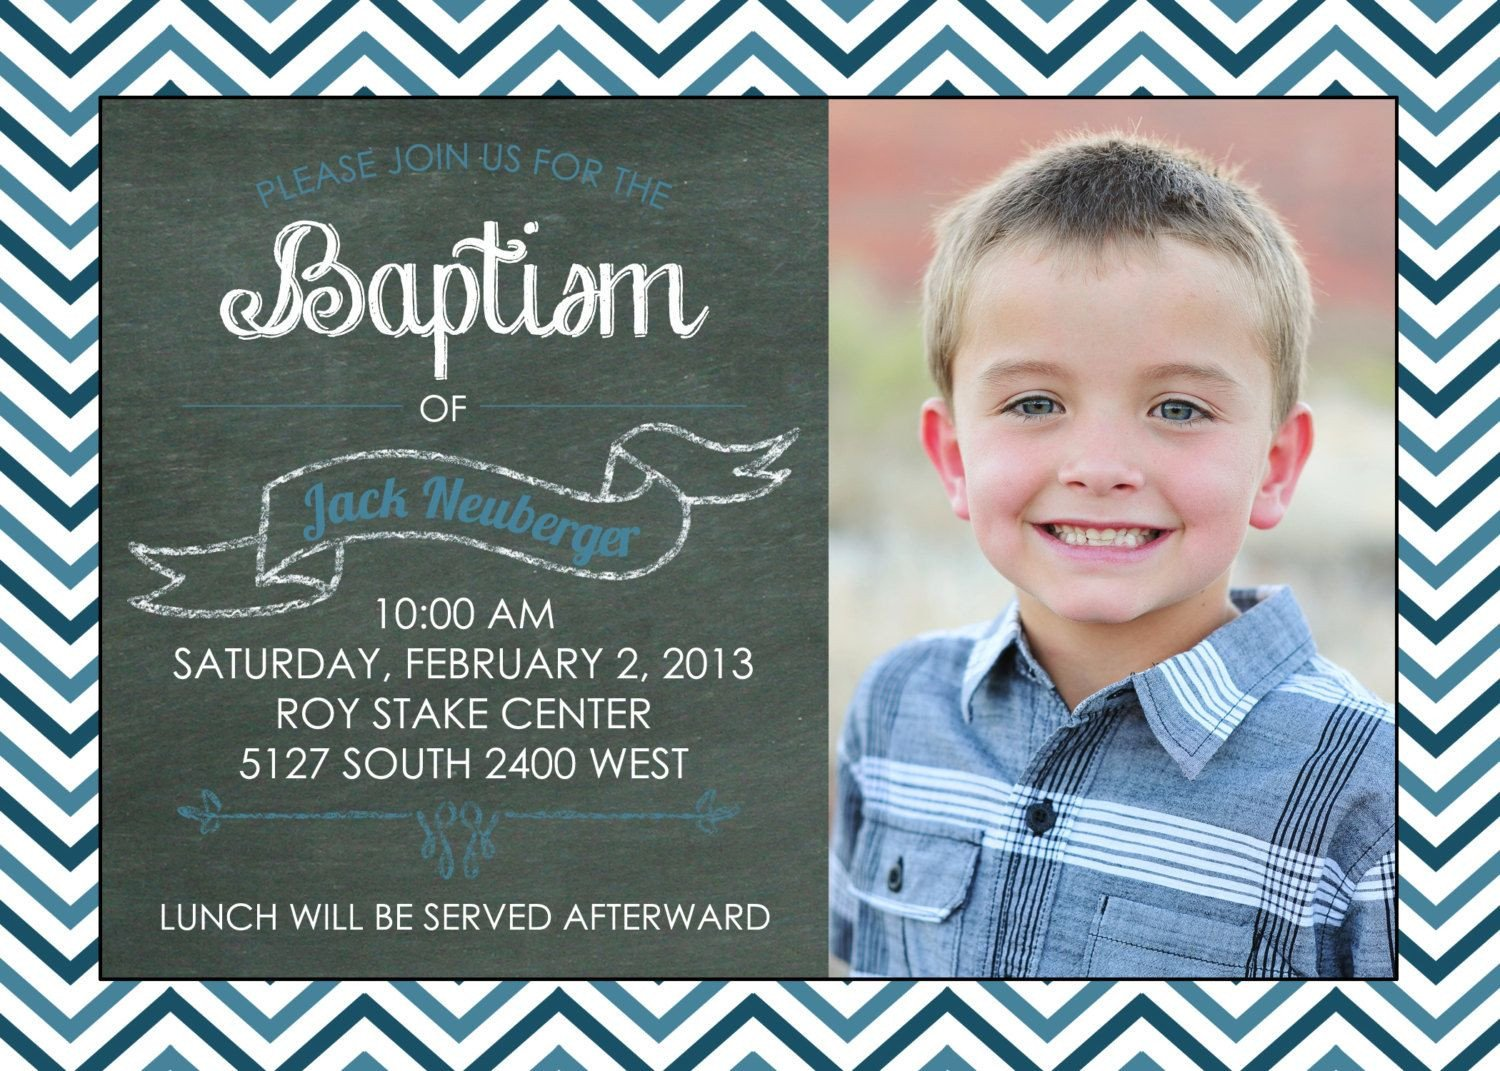 Lds Baptism Announcement Template Free Printable Chalkboard Baptism Invitation Lds Girl Boy